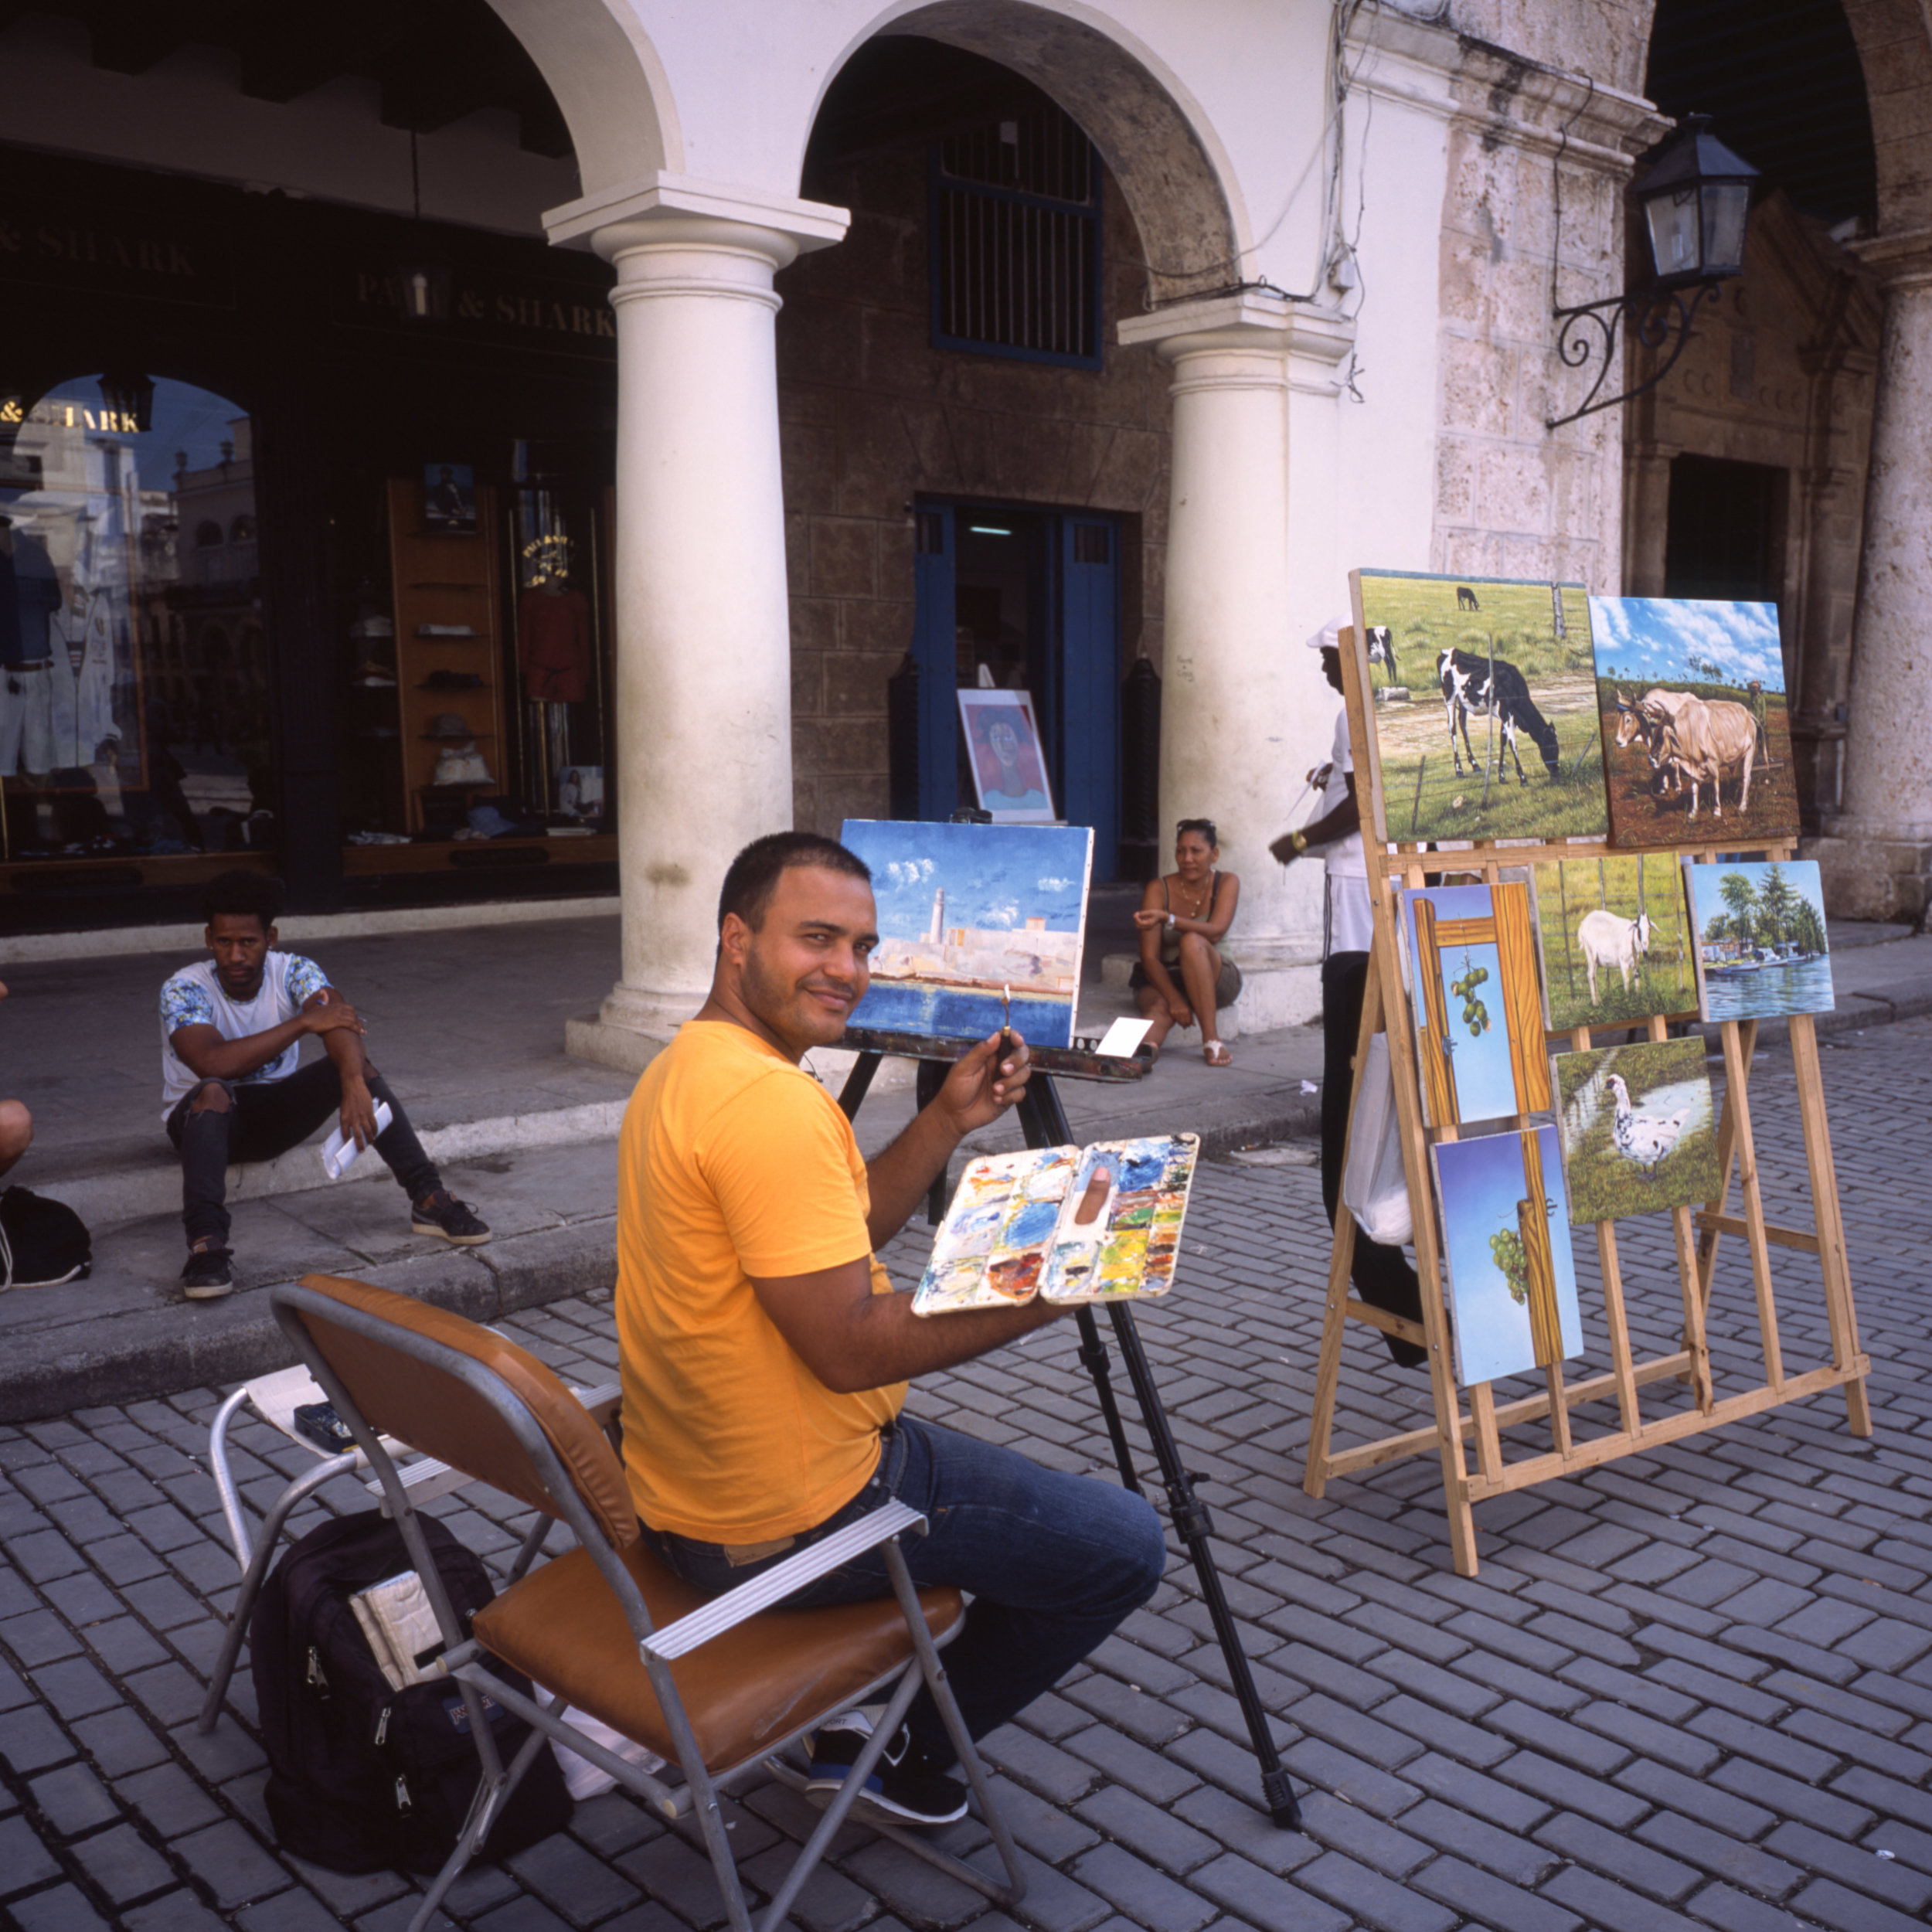 This guy, painting. I gave him an instax photo that is on his easel Fuji GF670 + Fuji Provia 100f